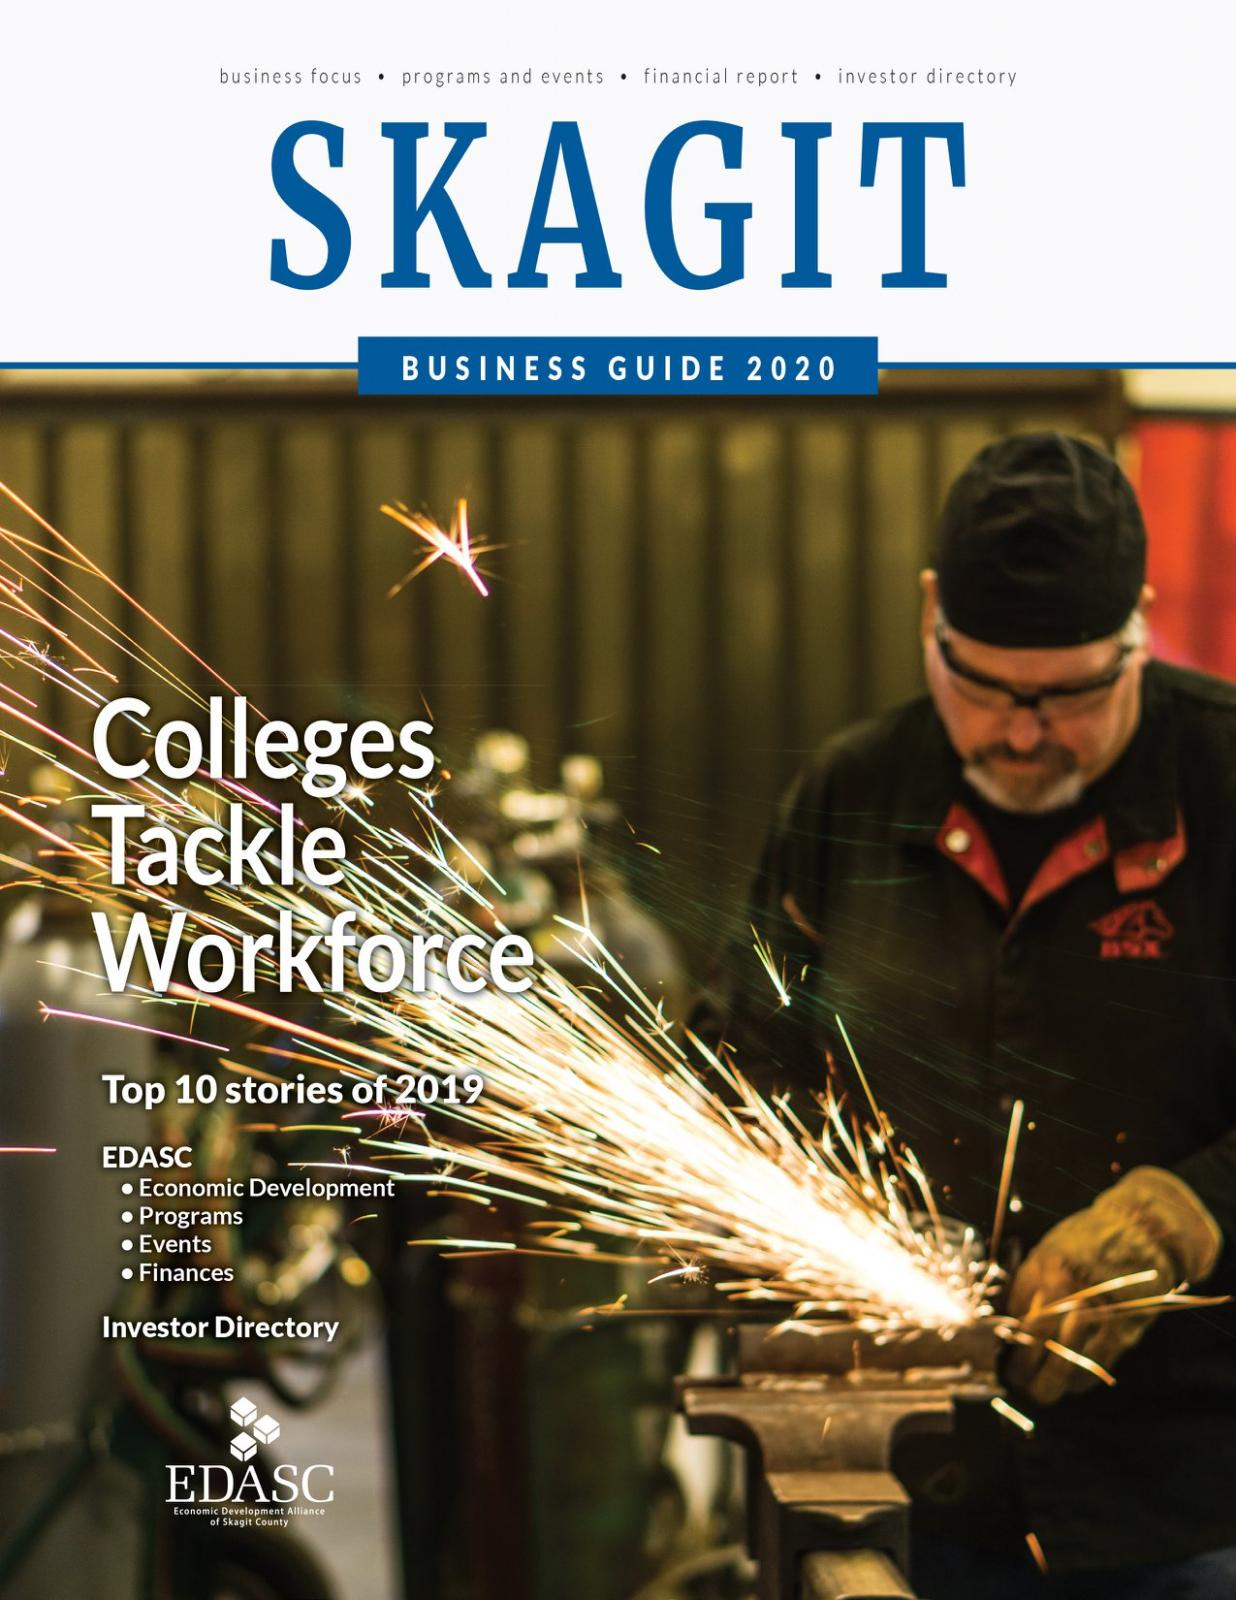 2020 Skagit Business Guide